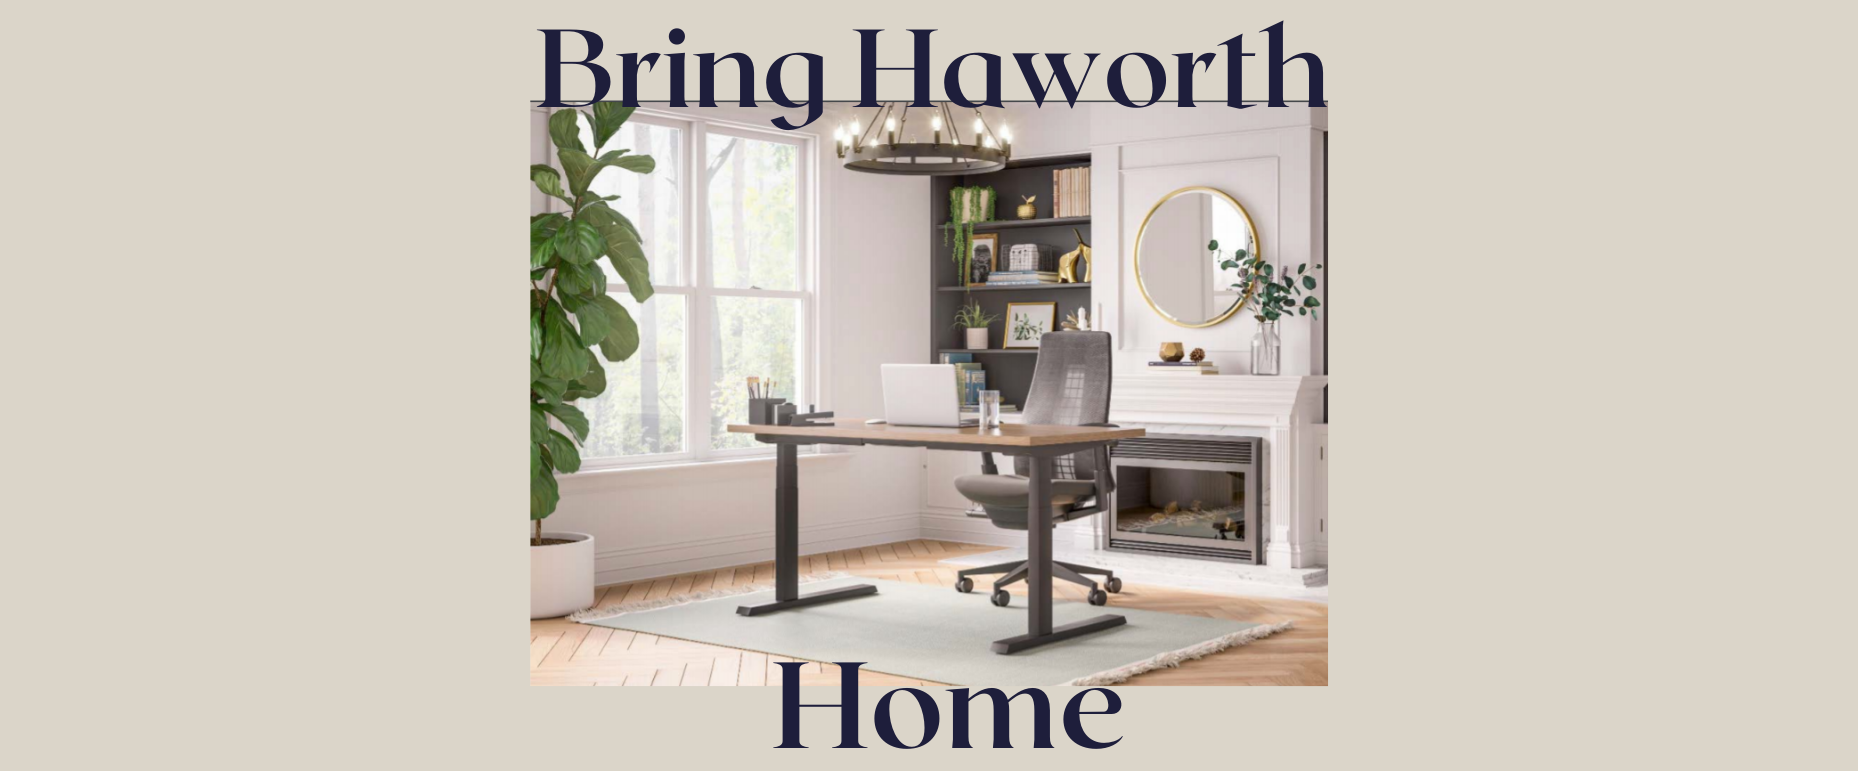 Brutzmans is now partnering with Haworth Home!